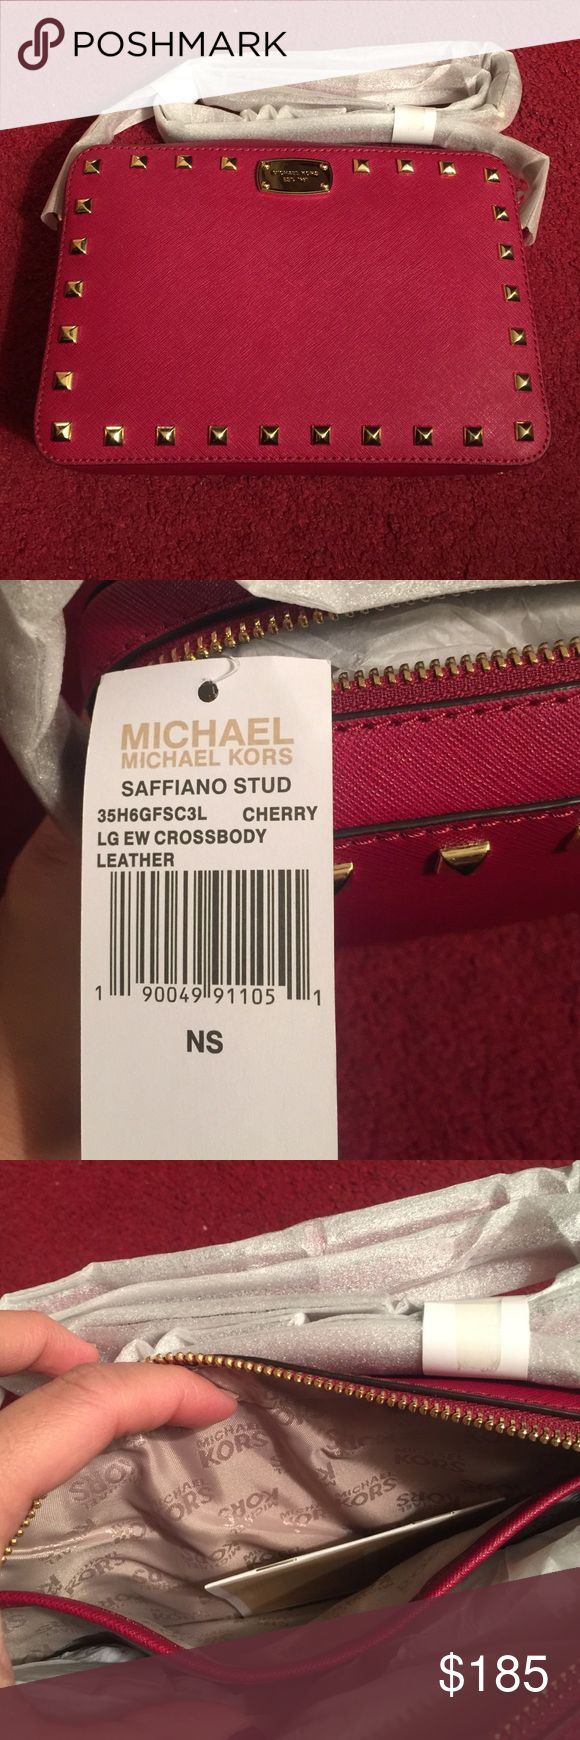 MICHAEL KORS Large safiano leather crossbody bag! Brand new mk saffiano leather large crossbody bag  color cherry 😉👌🏼👌🏼👌🏼 PRICE IS Negotiable😉 No low  ballers Pls😉 Michael Kors Bags Crossbody Bags